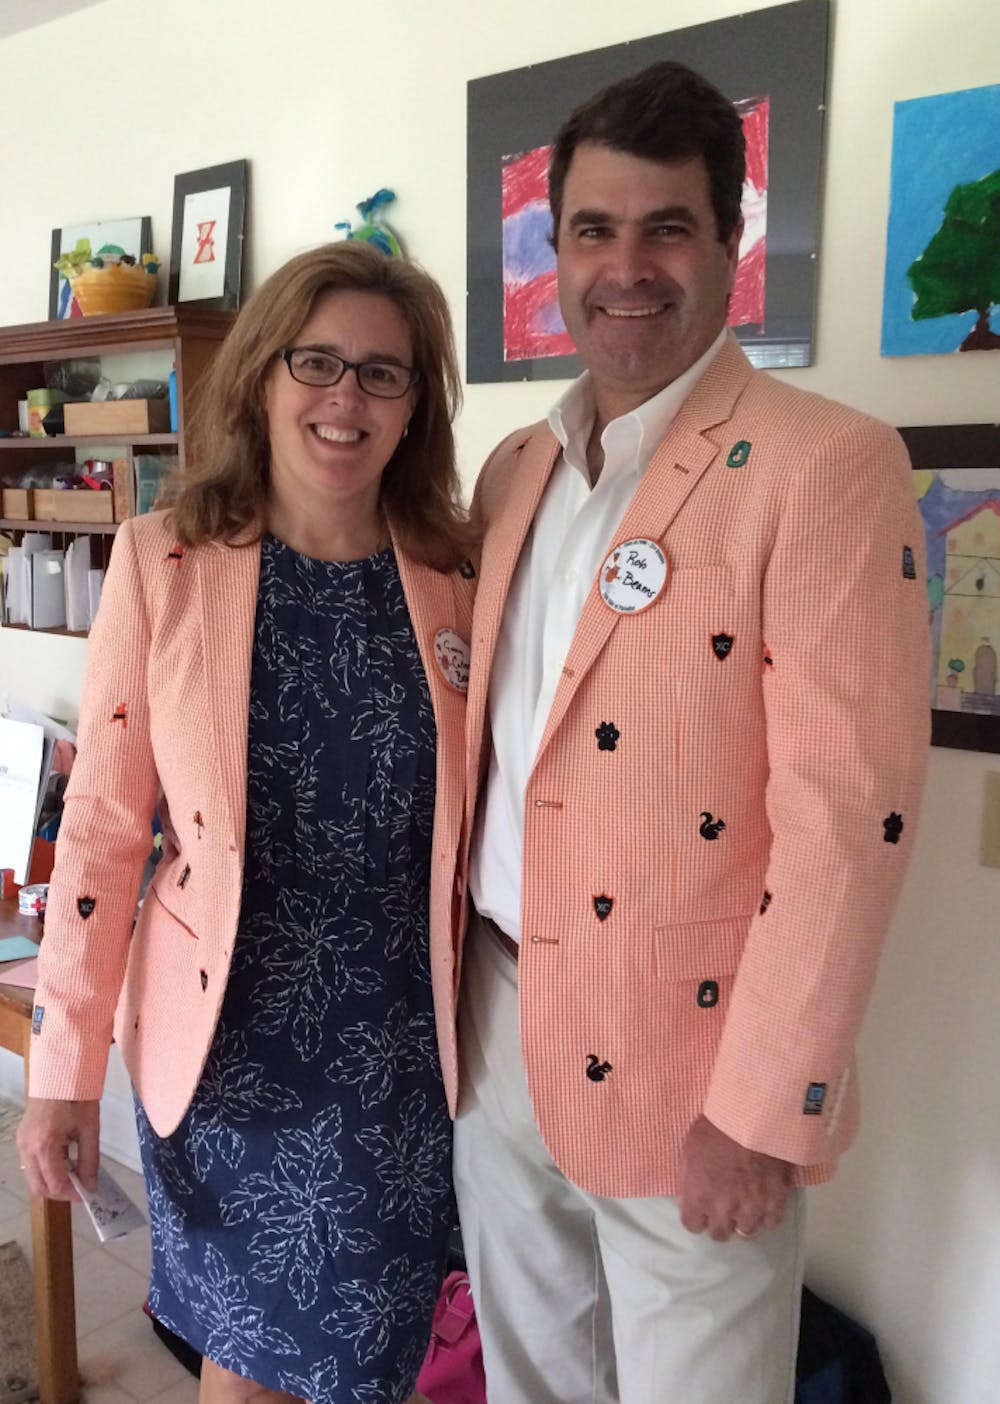 <p>Bob and Ginny Beams '90, sporting their Reunions jackets.</p> <h6>Photo Courtesy of Bob and Ginny Beams</h6>